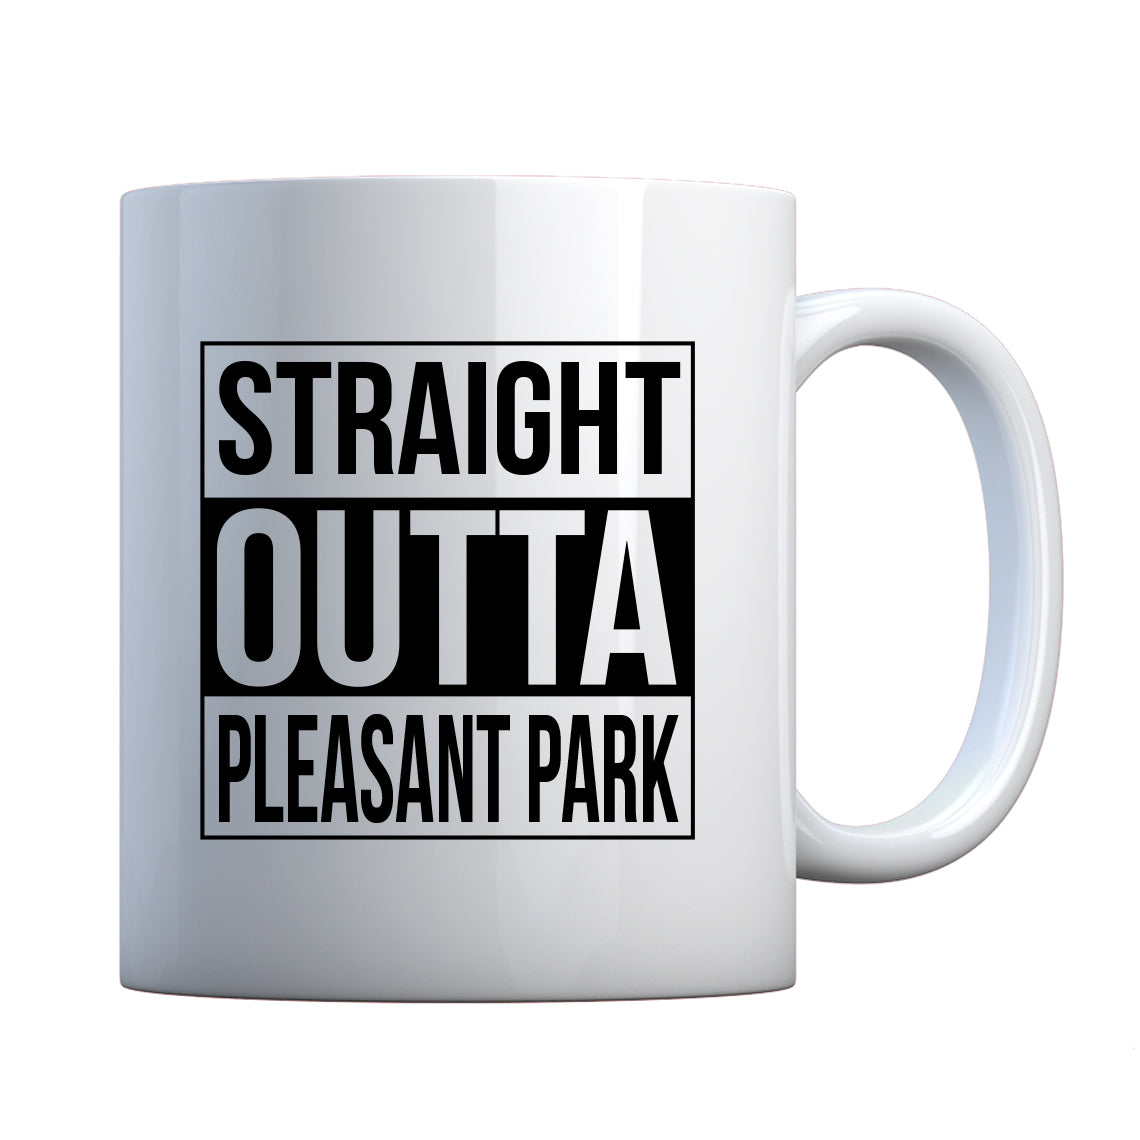 Mug Straight Outta Pleasant Park Ceramic Gift Mug